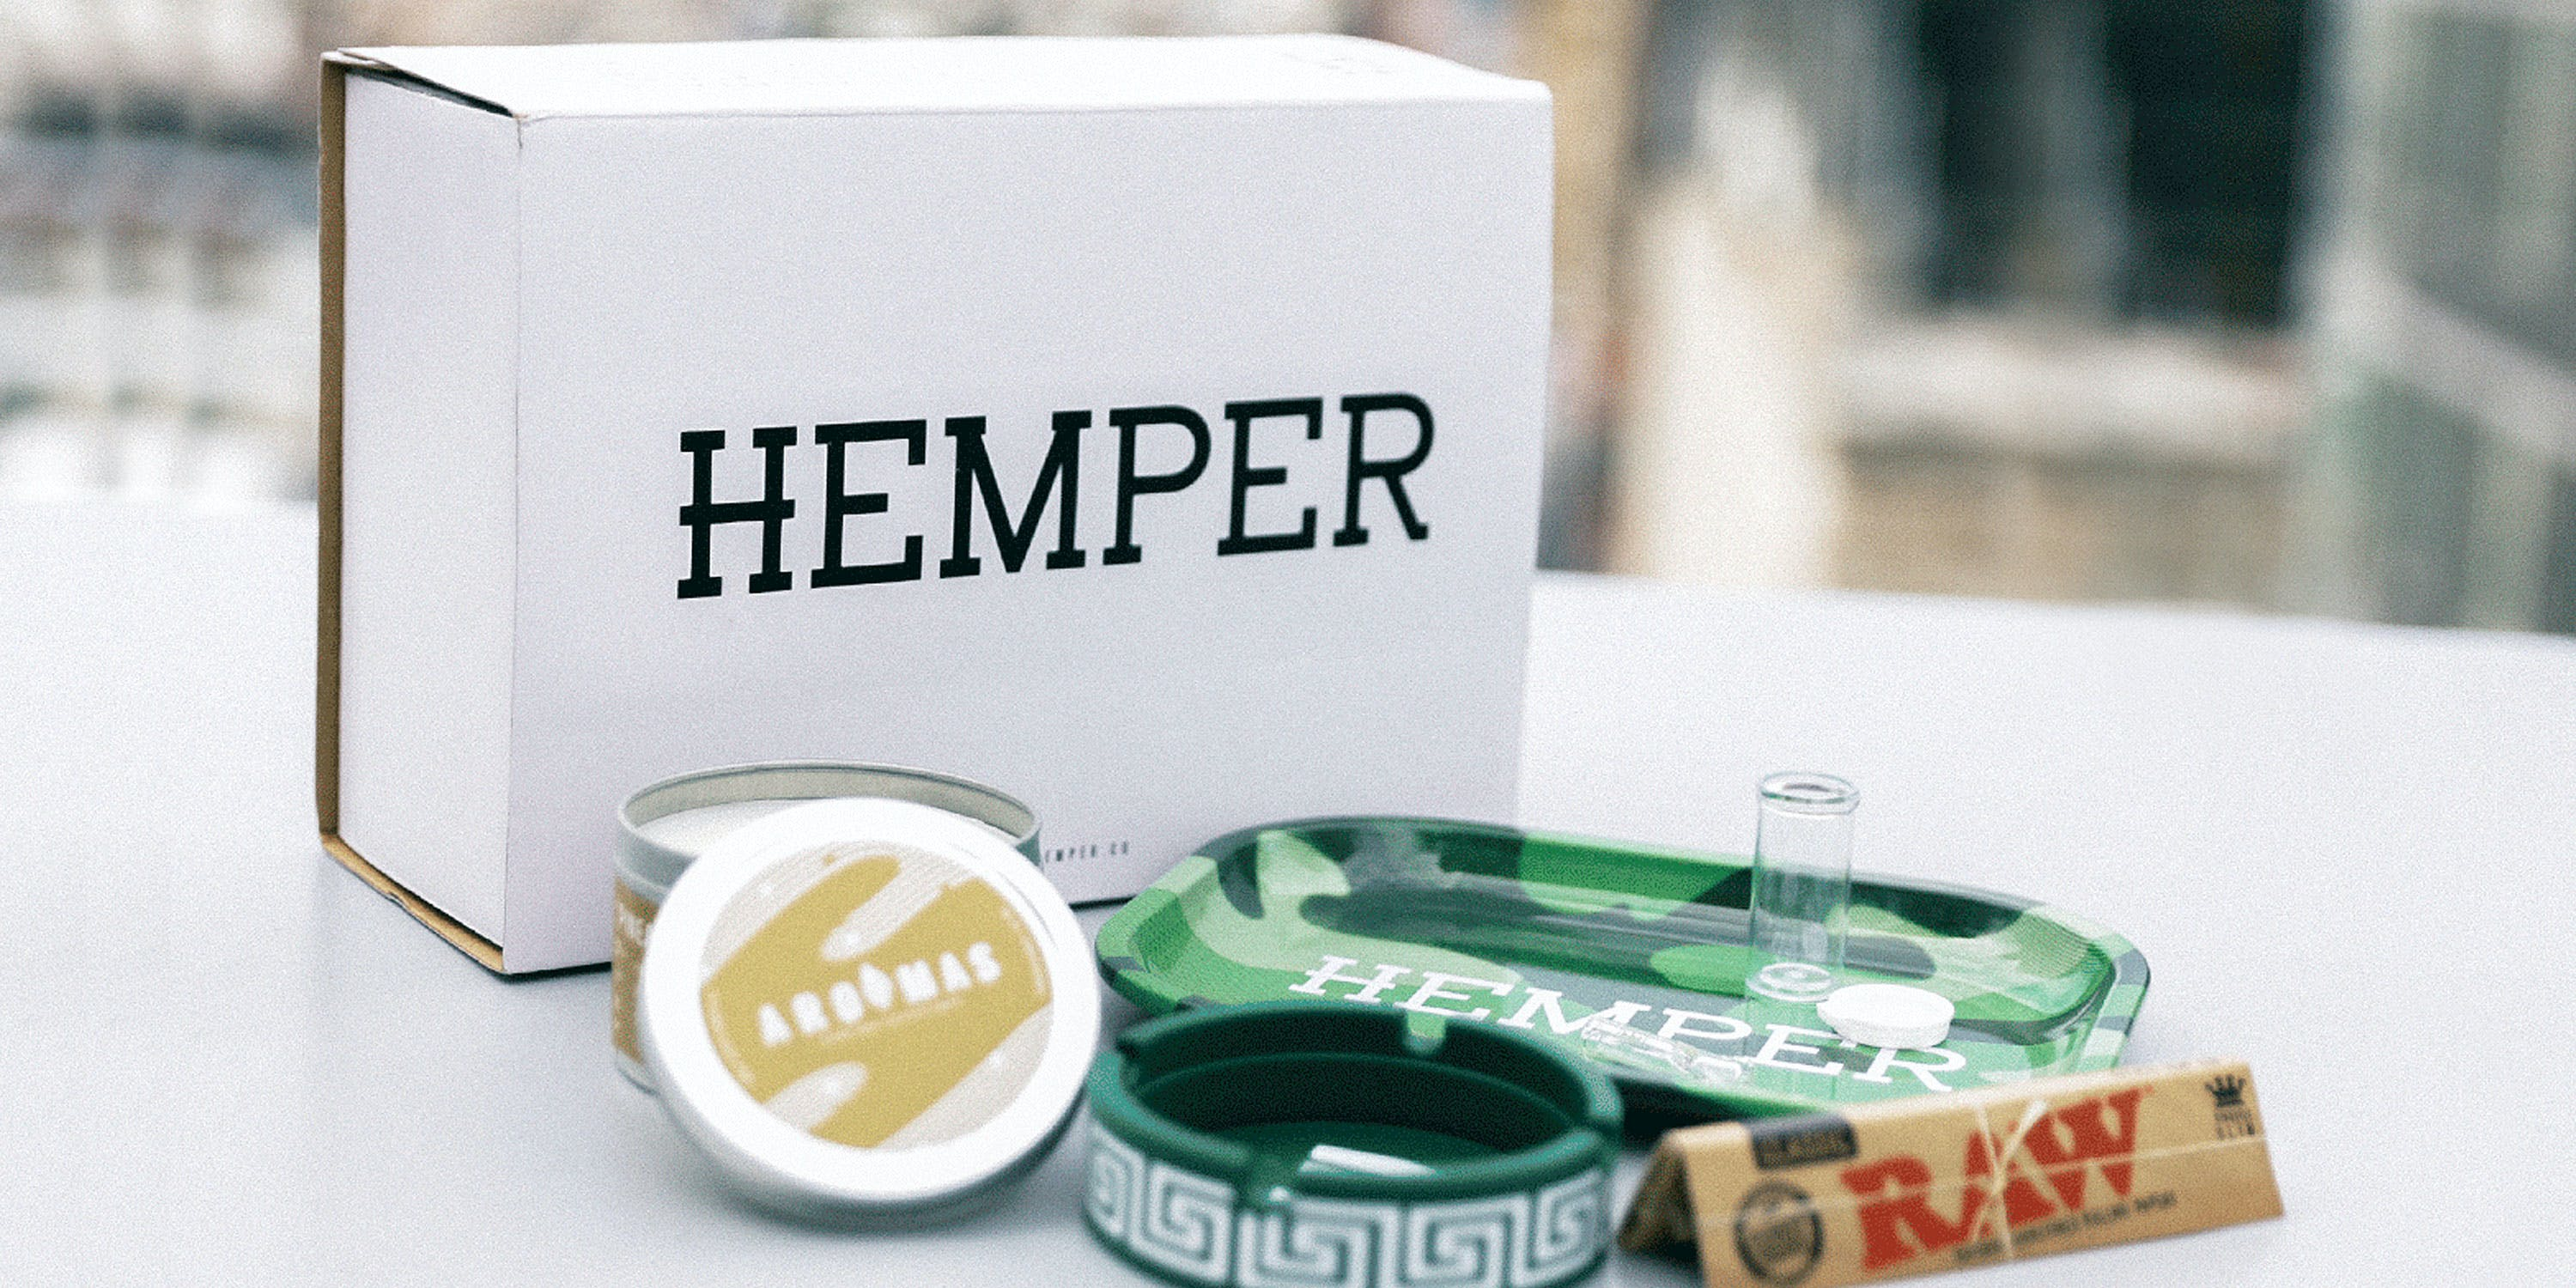 A photo of the contents of Hemper, a subscription box for weed products